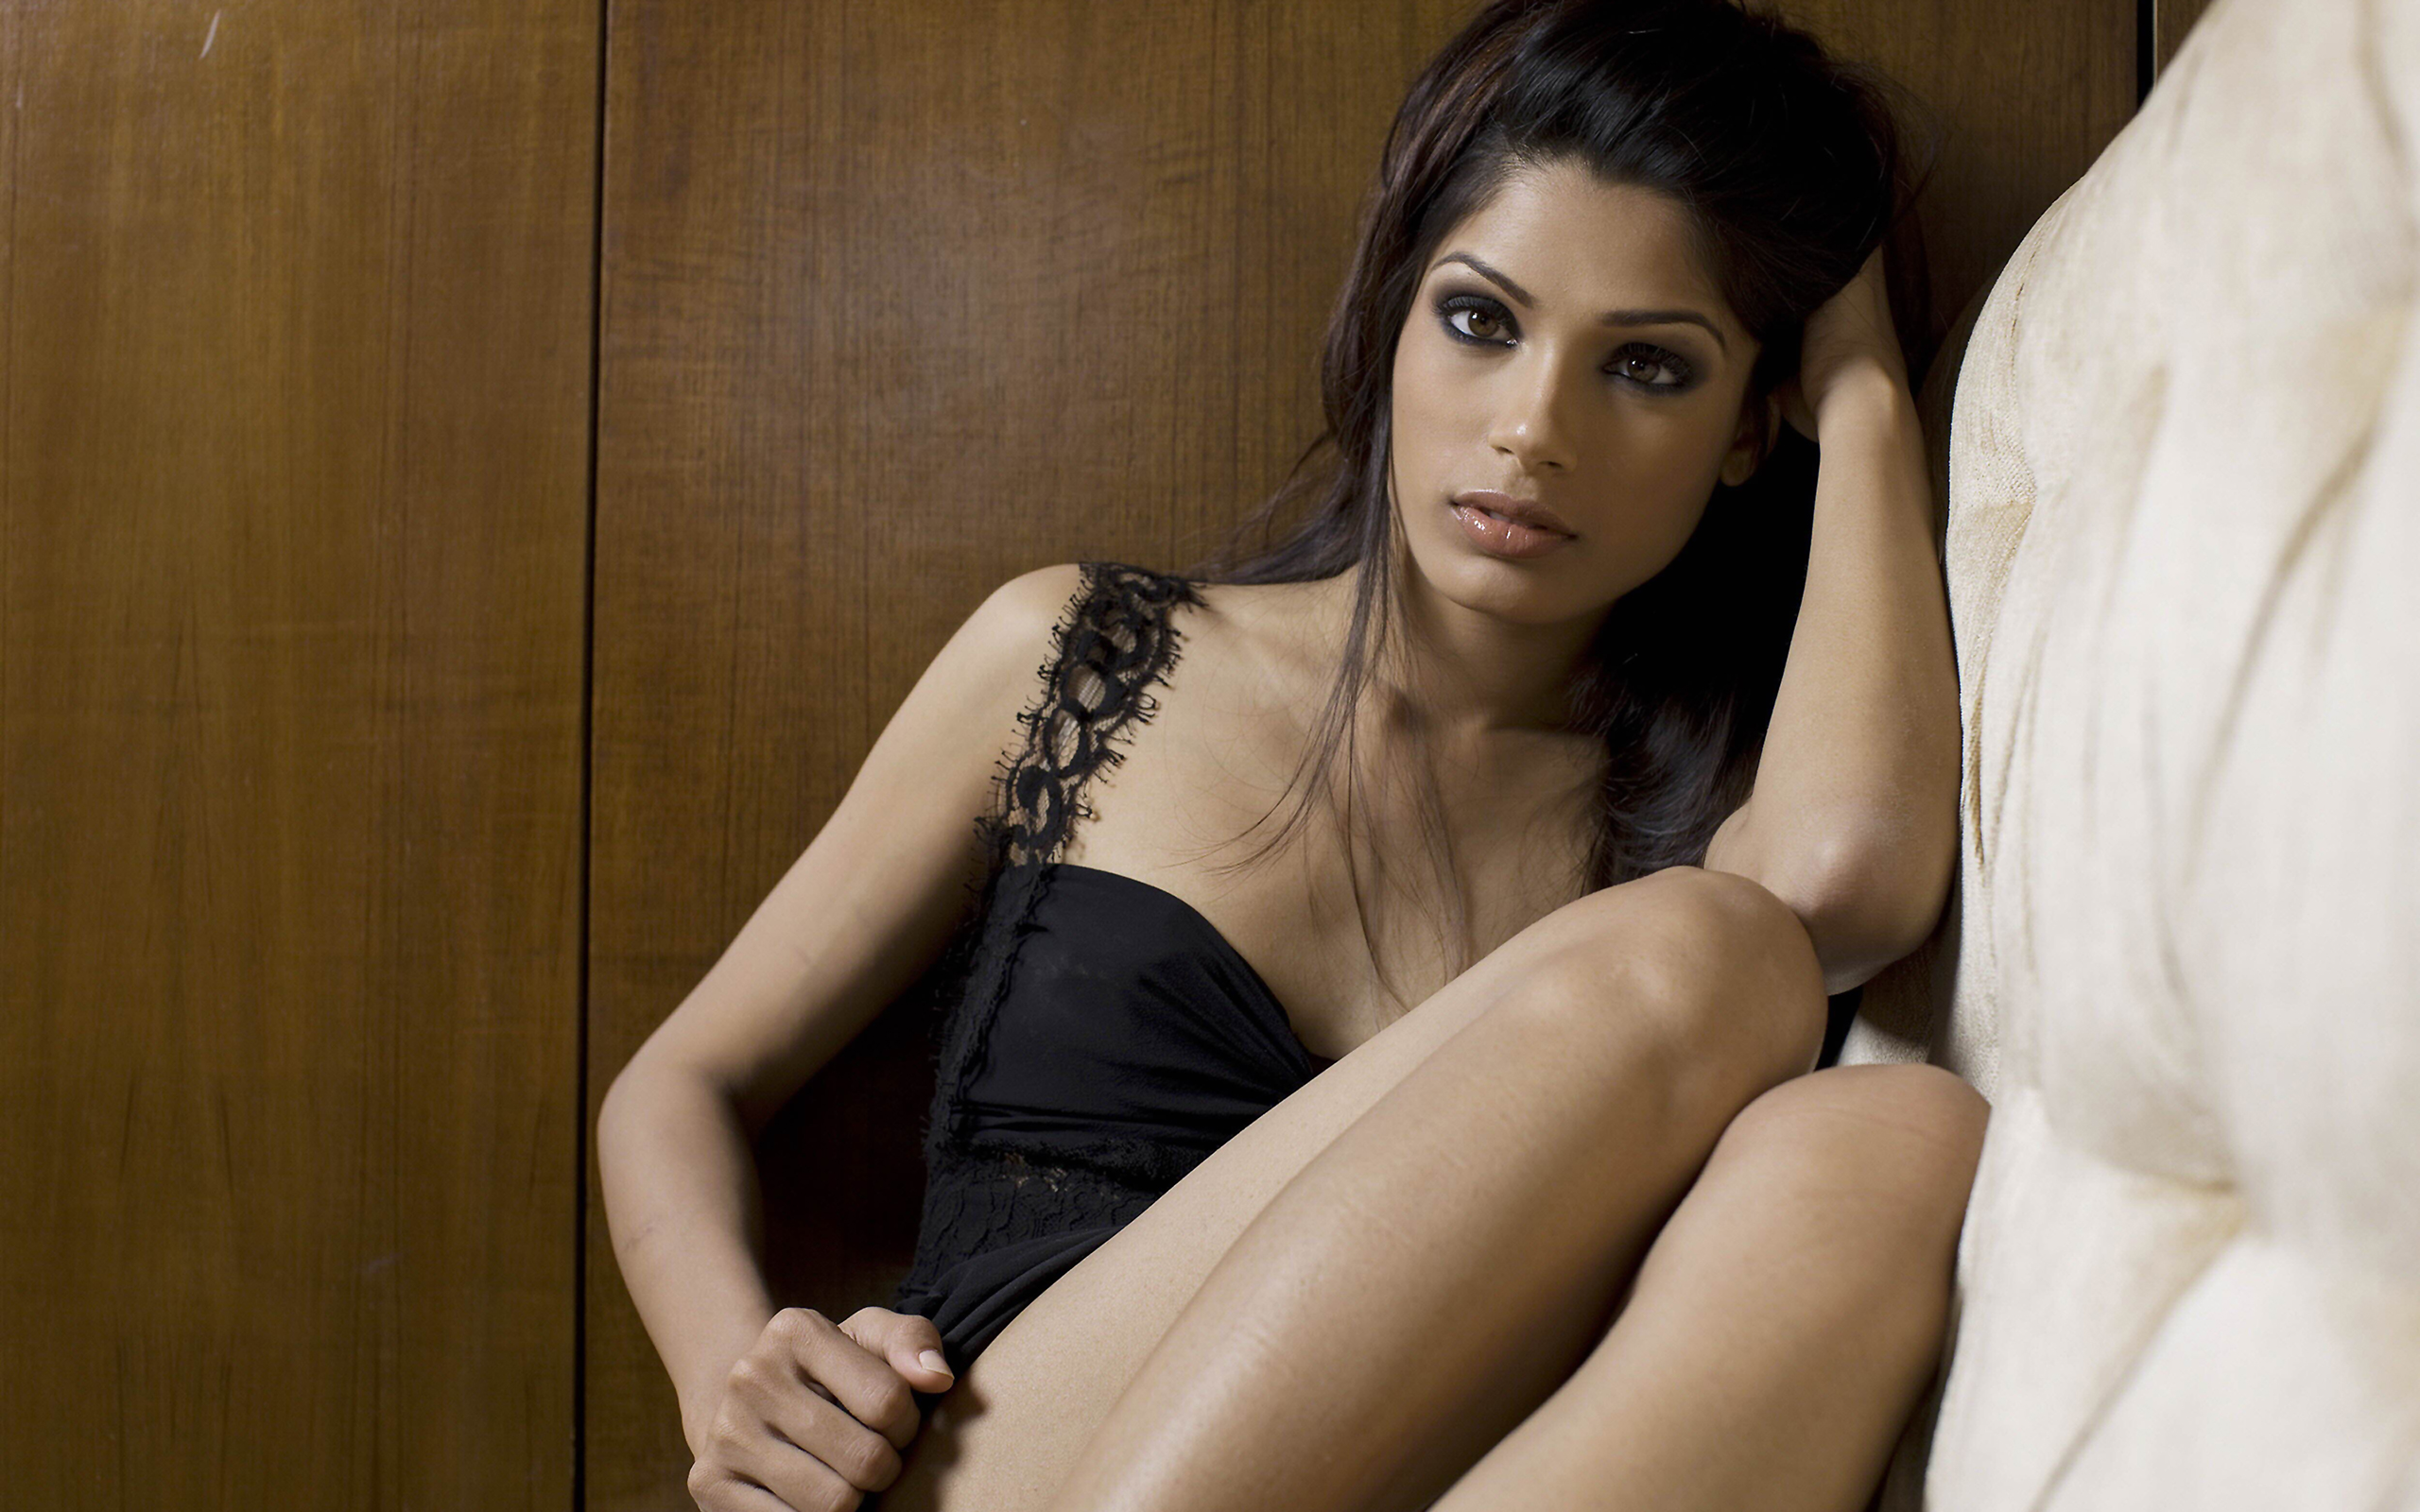 Freida pinto hot Wallpapers Pictures Photos Images. «